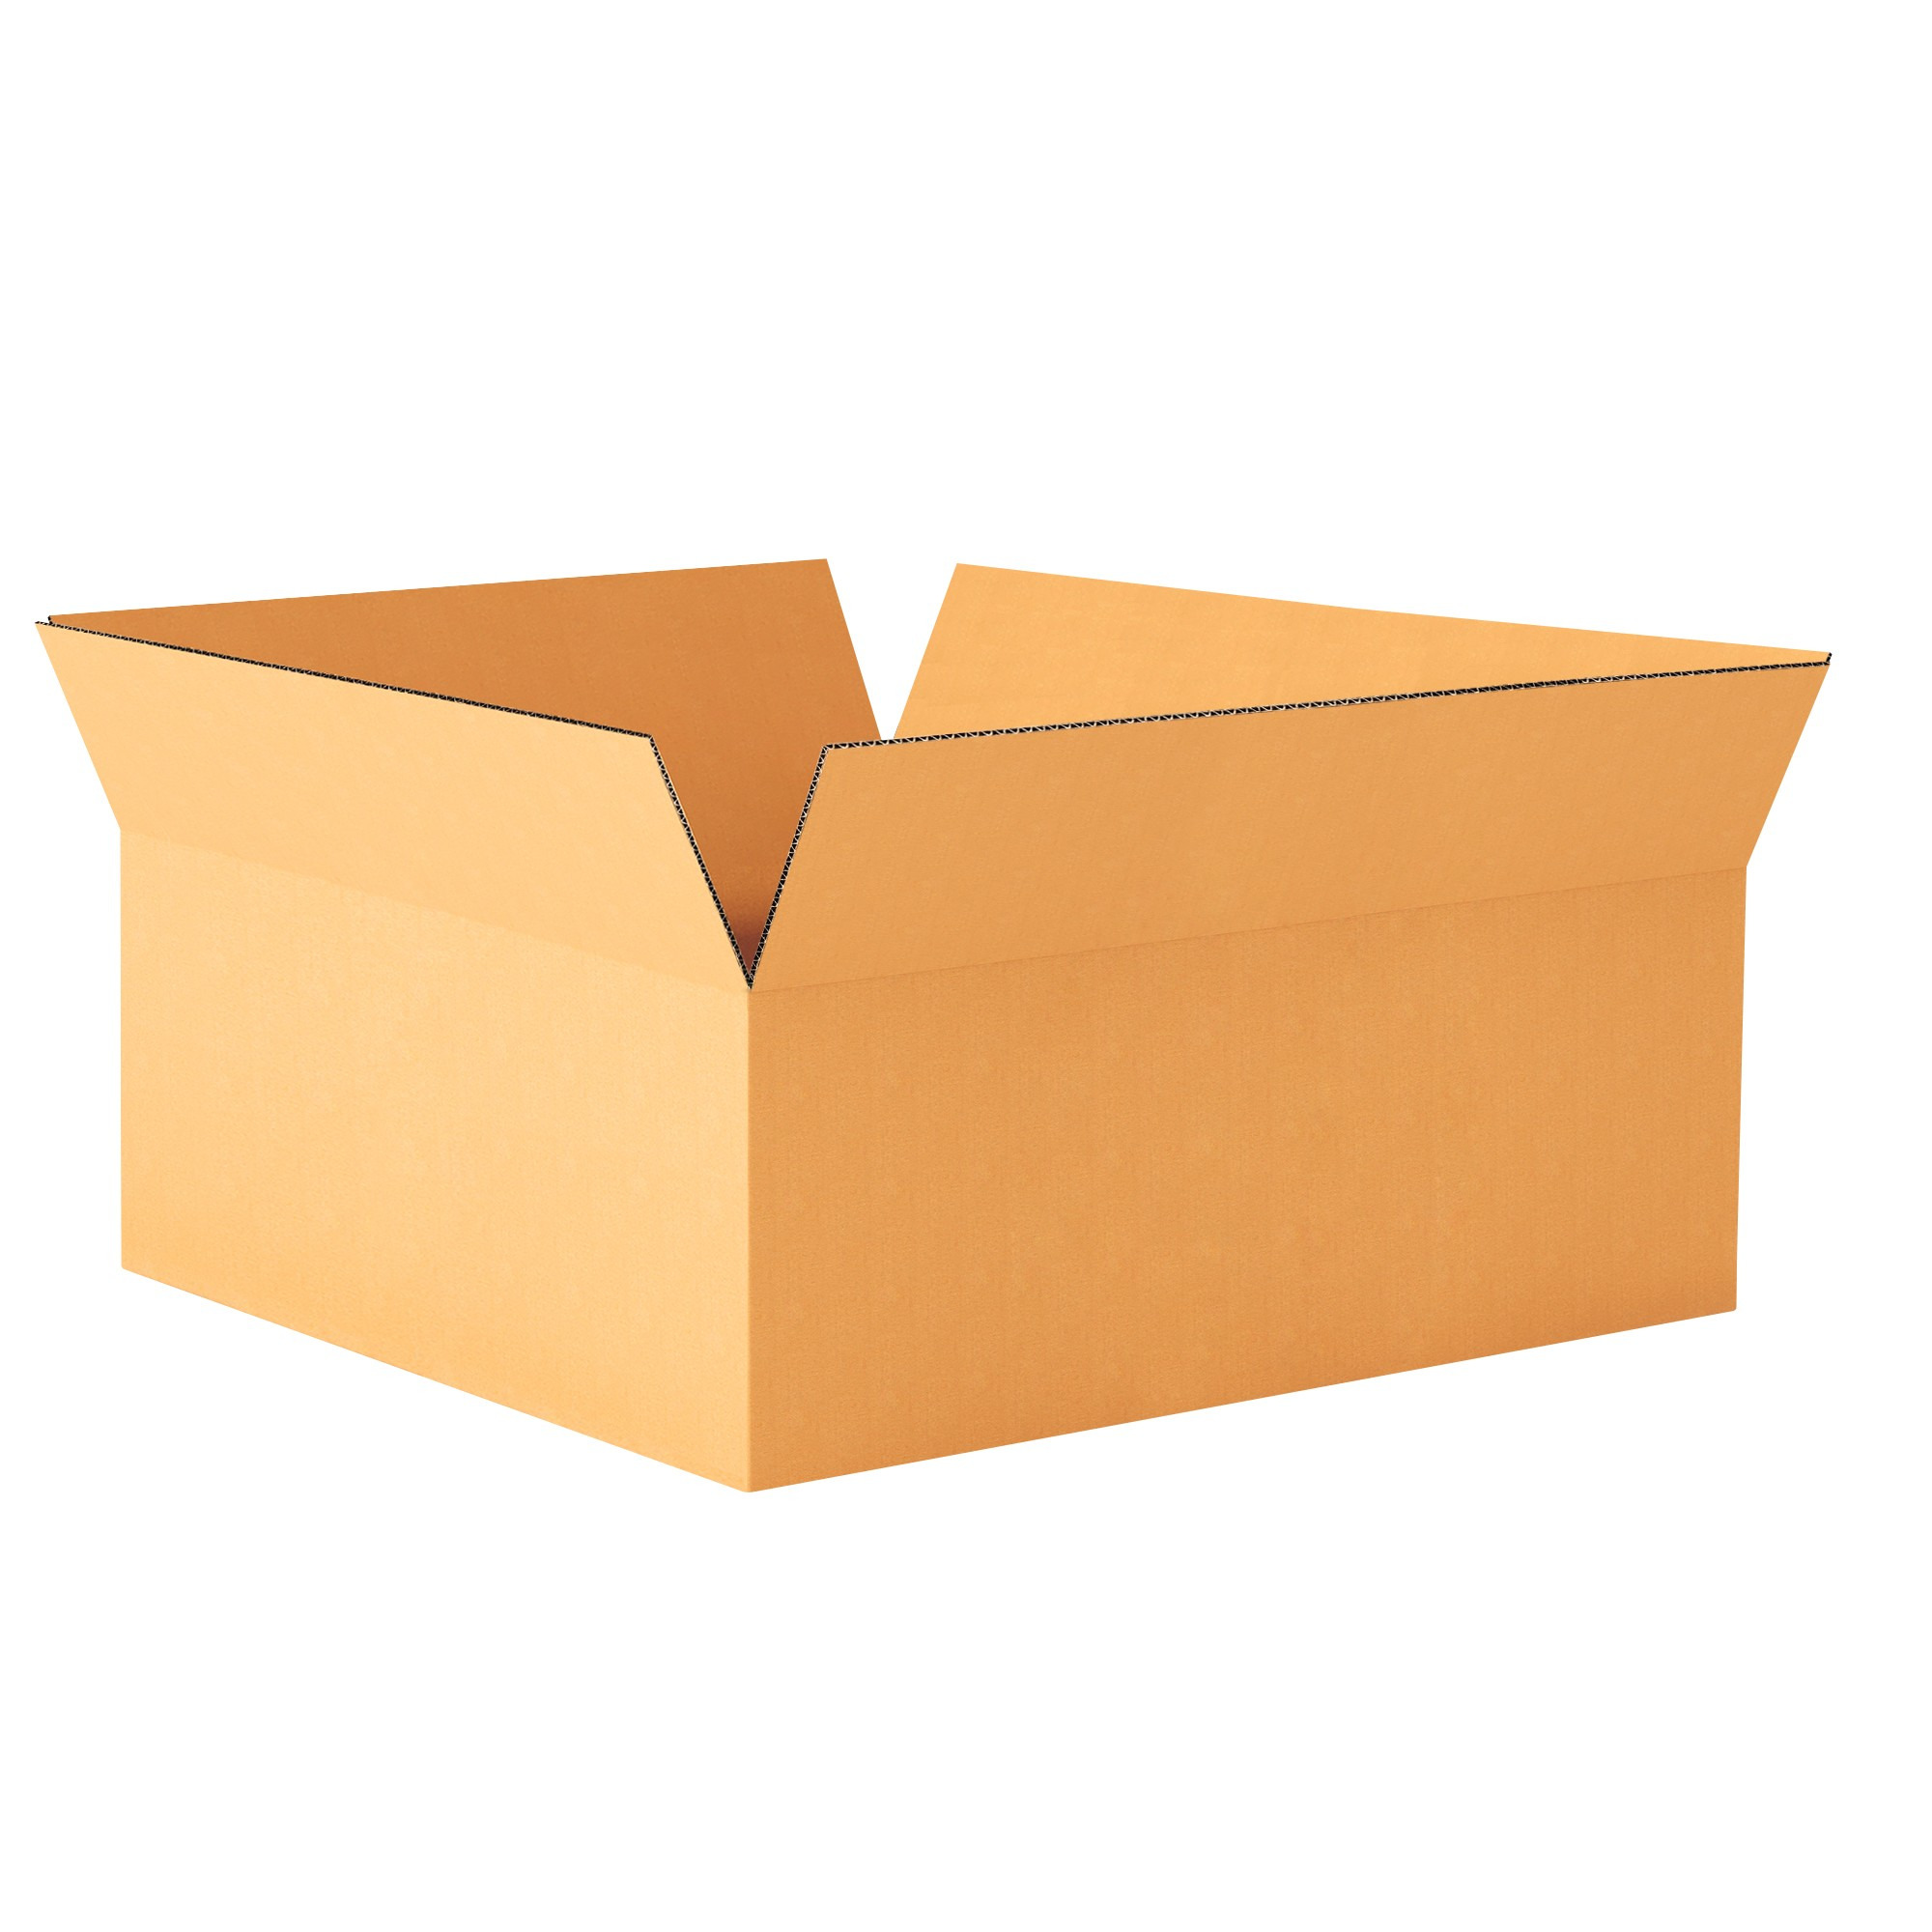 "TOTALPACK® 9 x 7 x 5"" Single Wall Corrugated Boxes 25 Units"